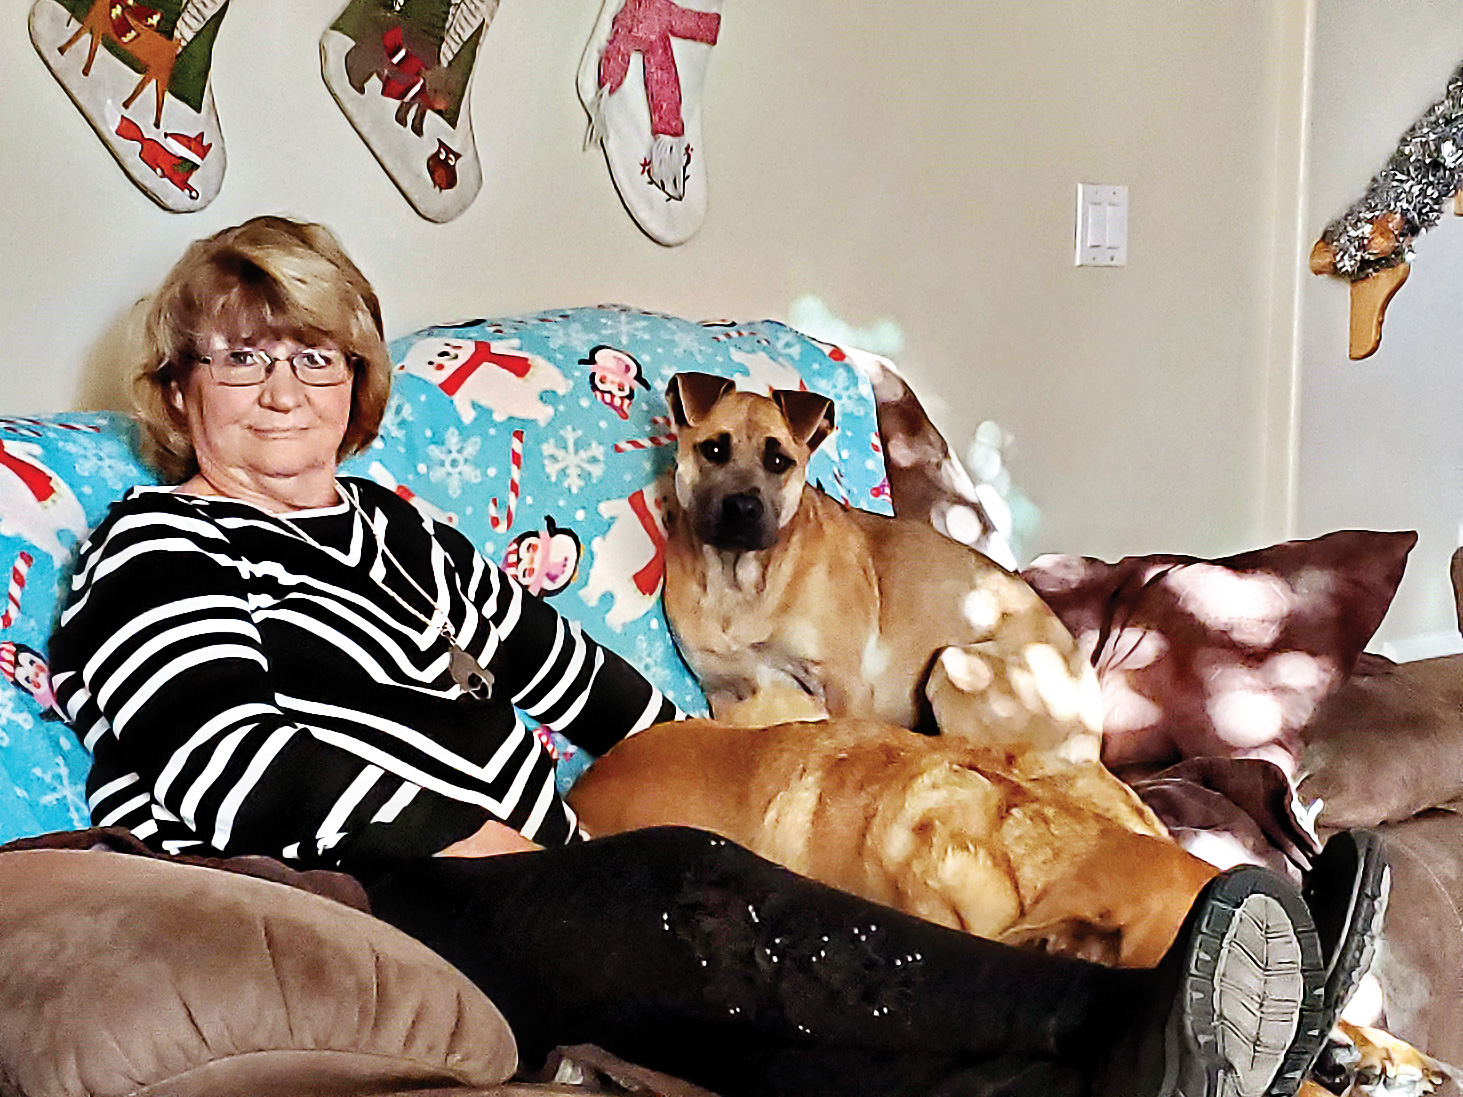 Eileen Depka babysitting grand dogs (Photo by Jeff Depka)